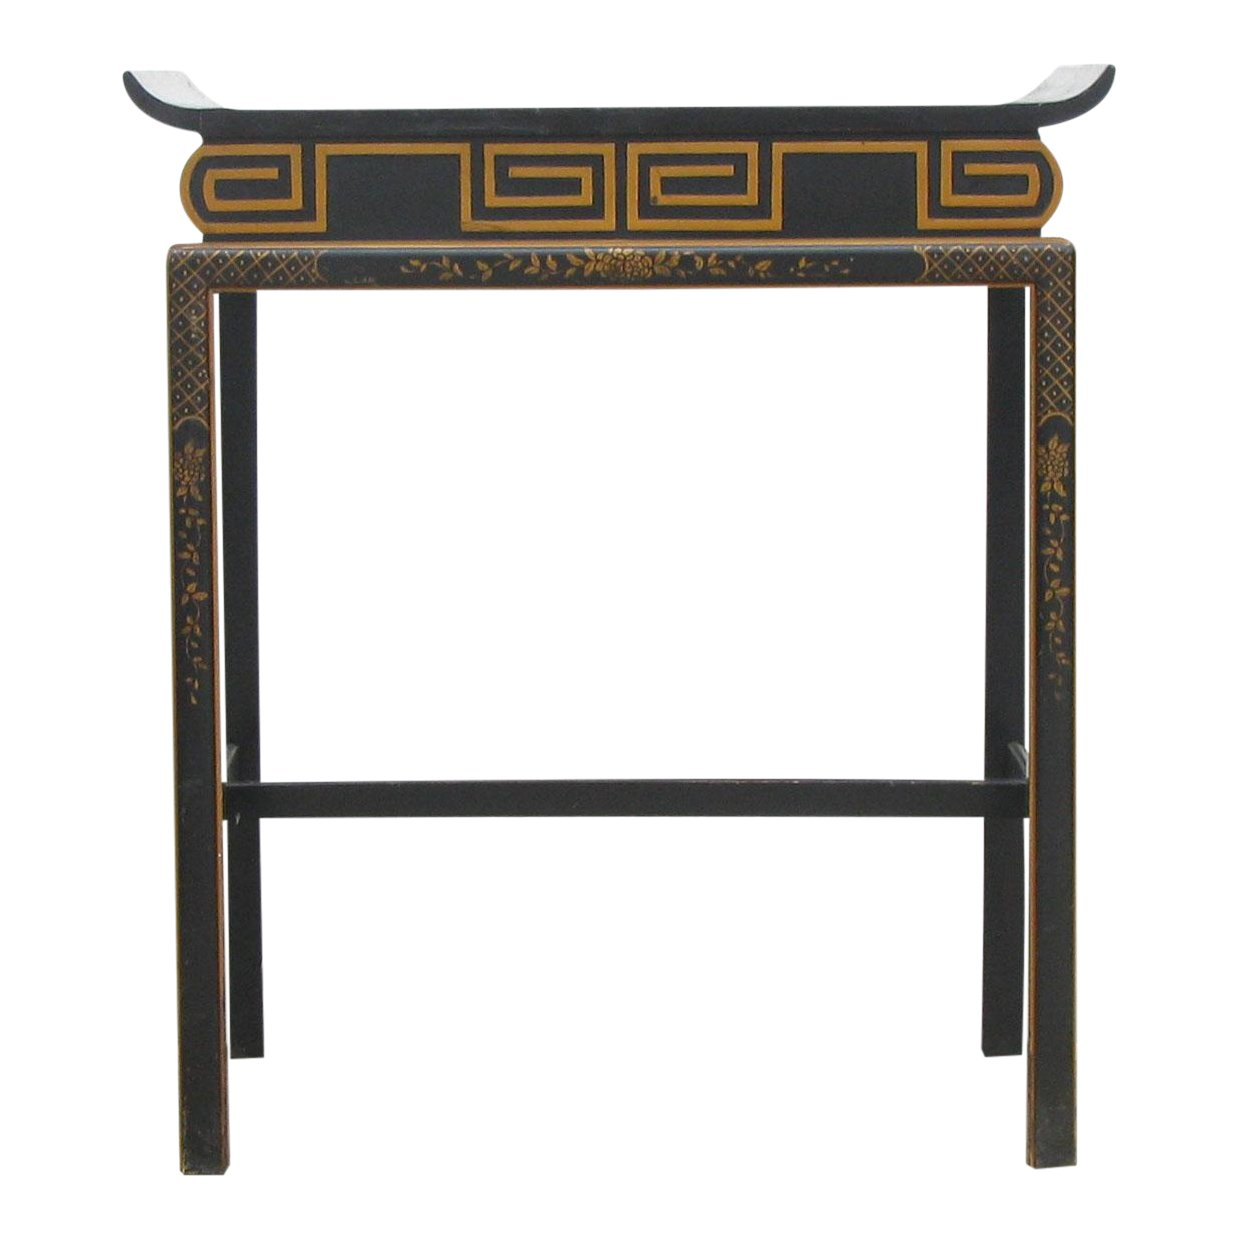 chinoiserie black lacquer accent table chairish cool end ideas navy blue coffee yellow console dark wood round pallet retro vintage sofa dining behind couch live edge urban home